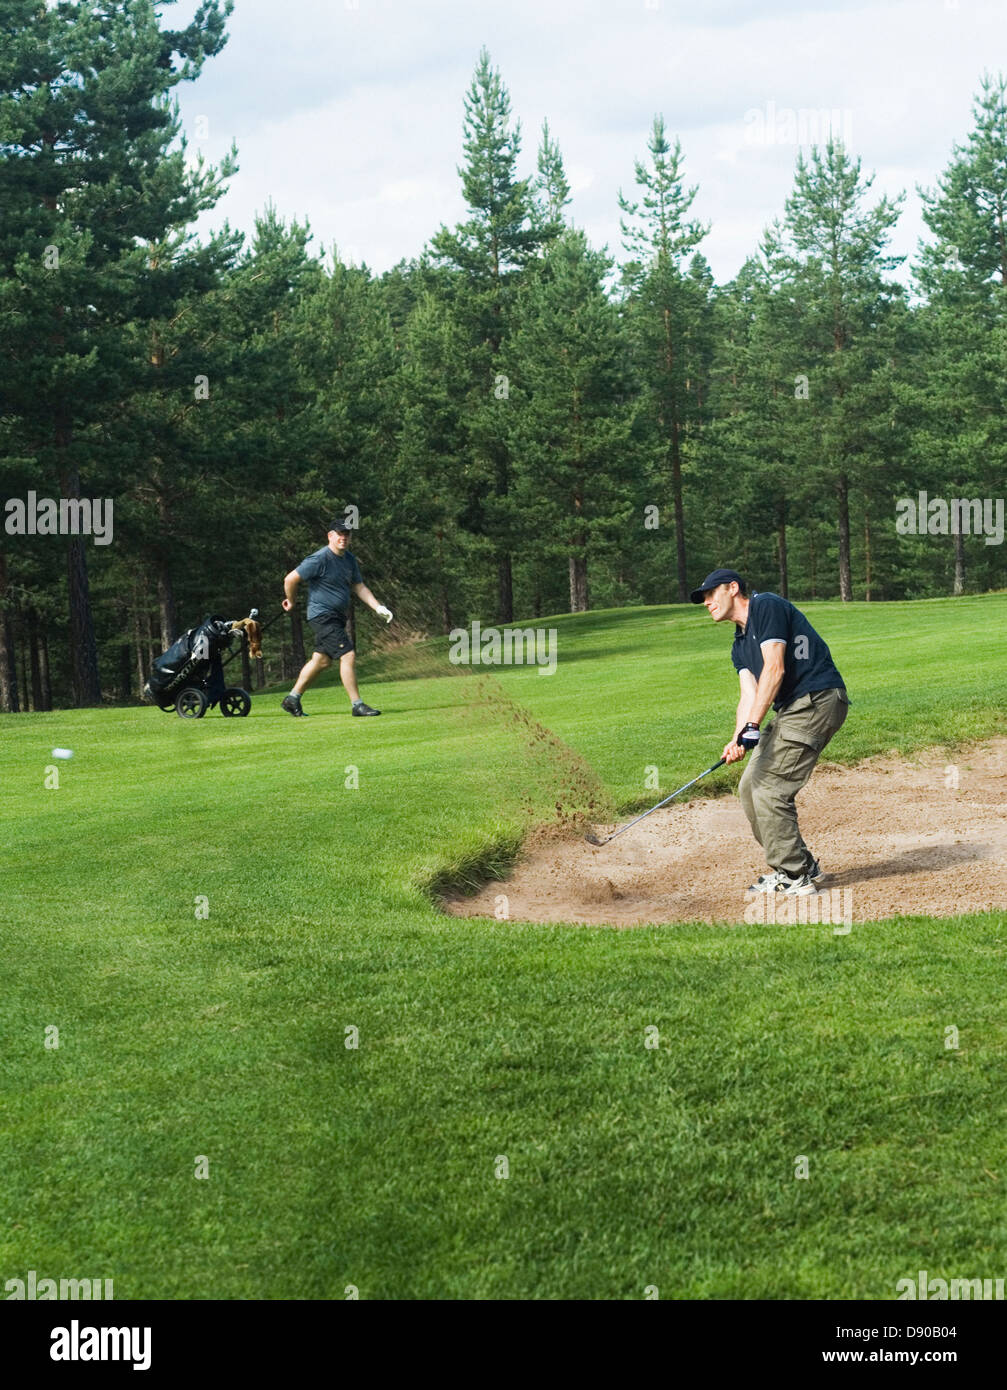 A man playing golf in Dalarnan Sweden. - Stock Image